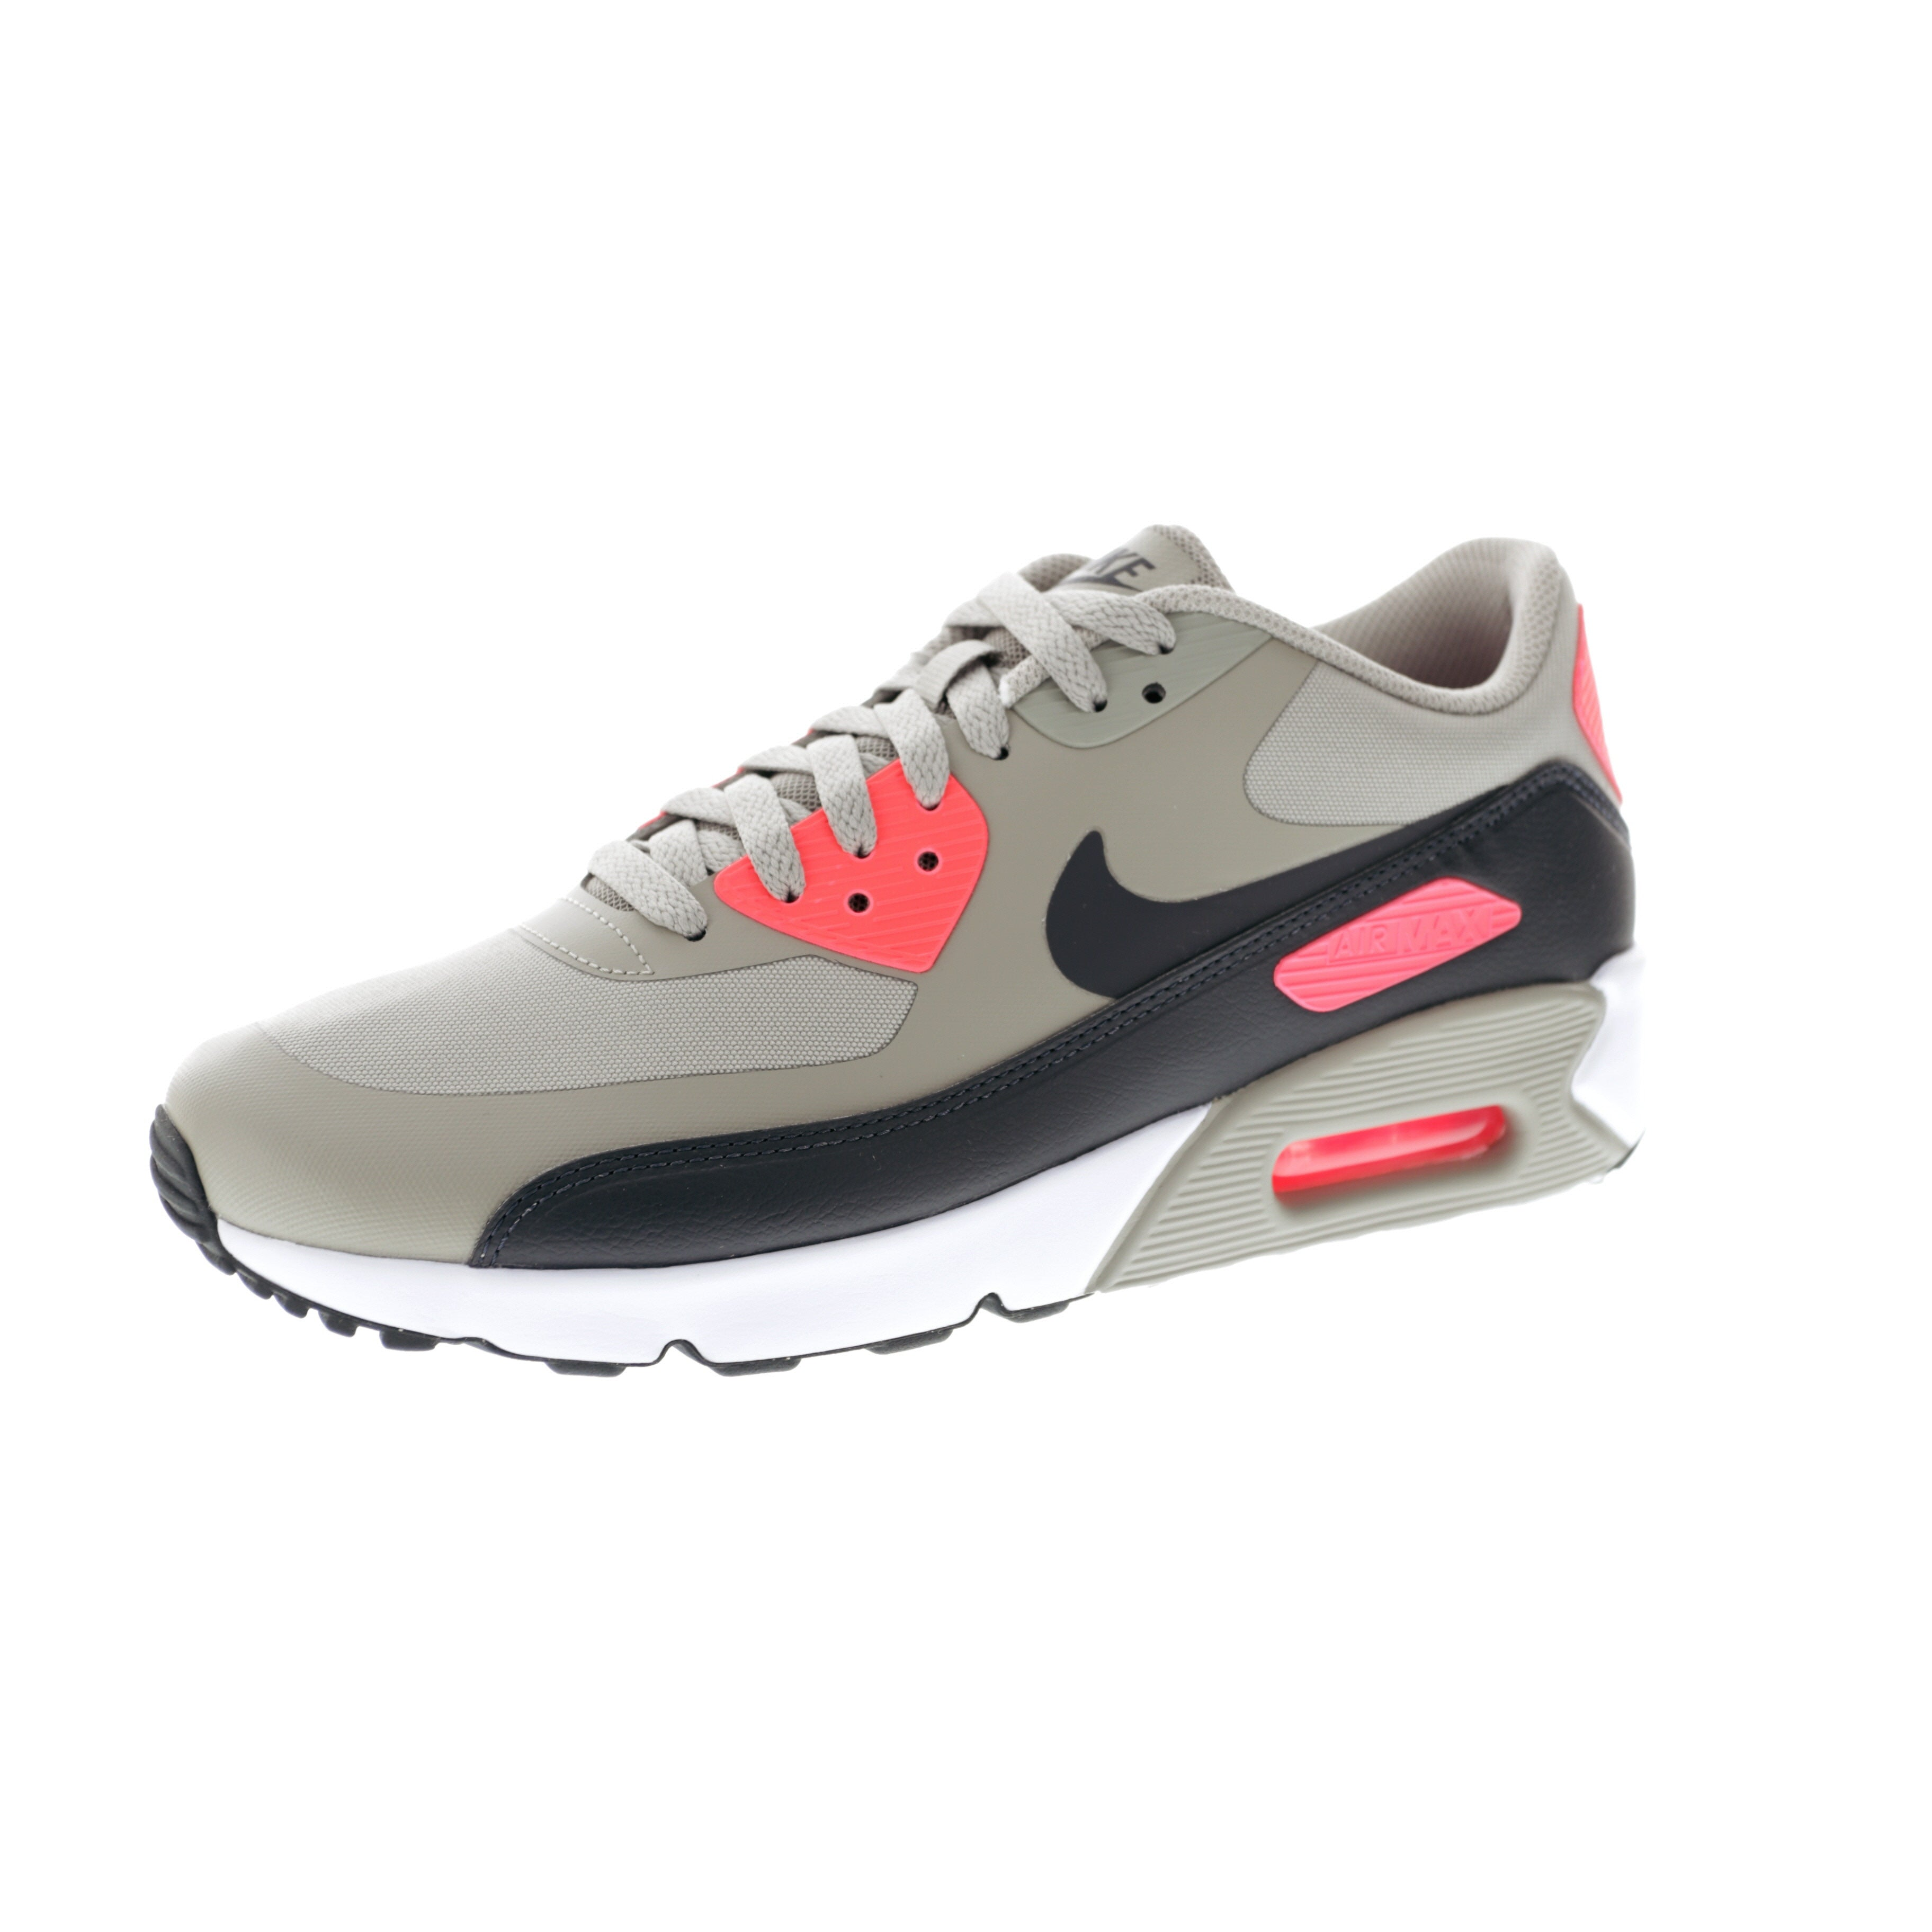 120 aud Nike Air Max 90 Ultra Essential 2.0 Shop online